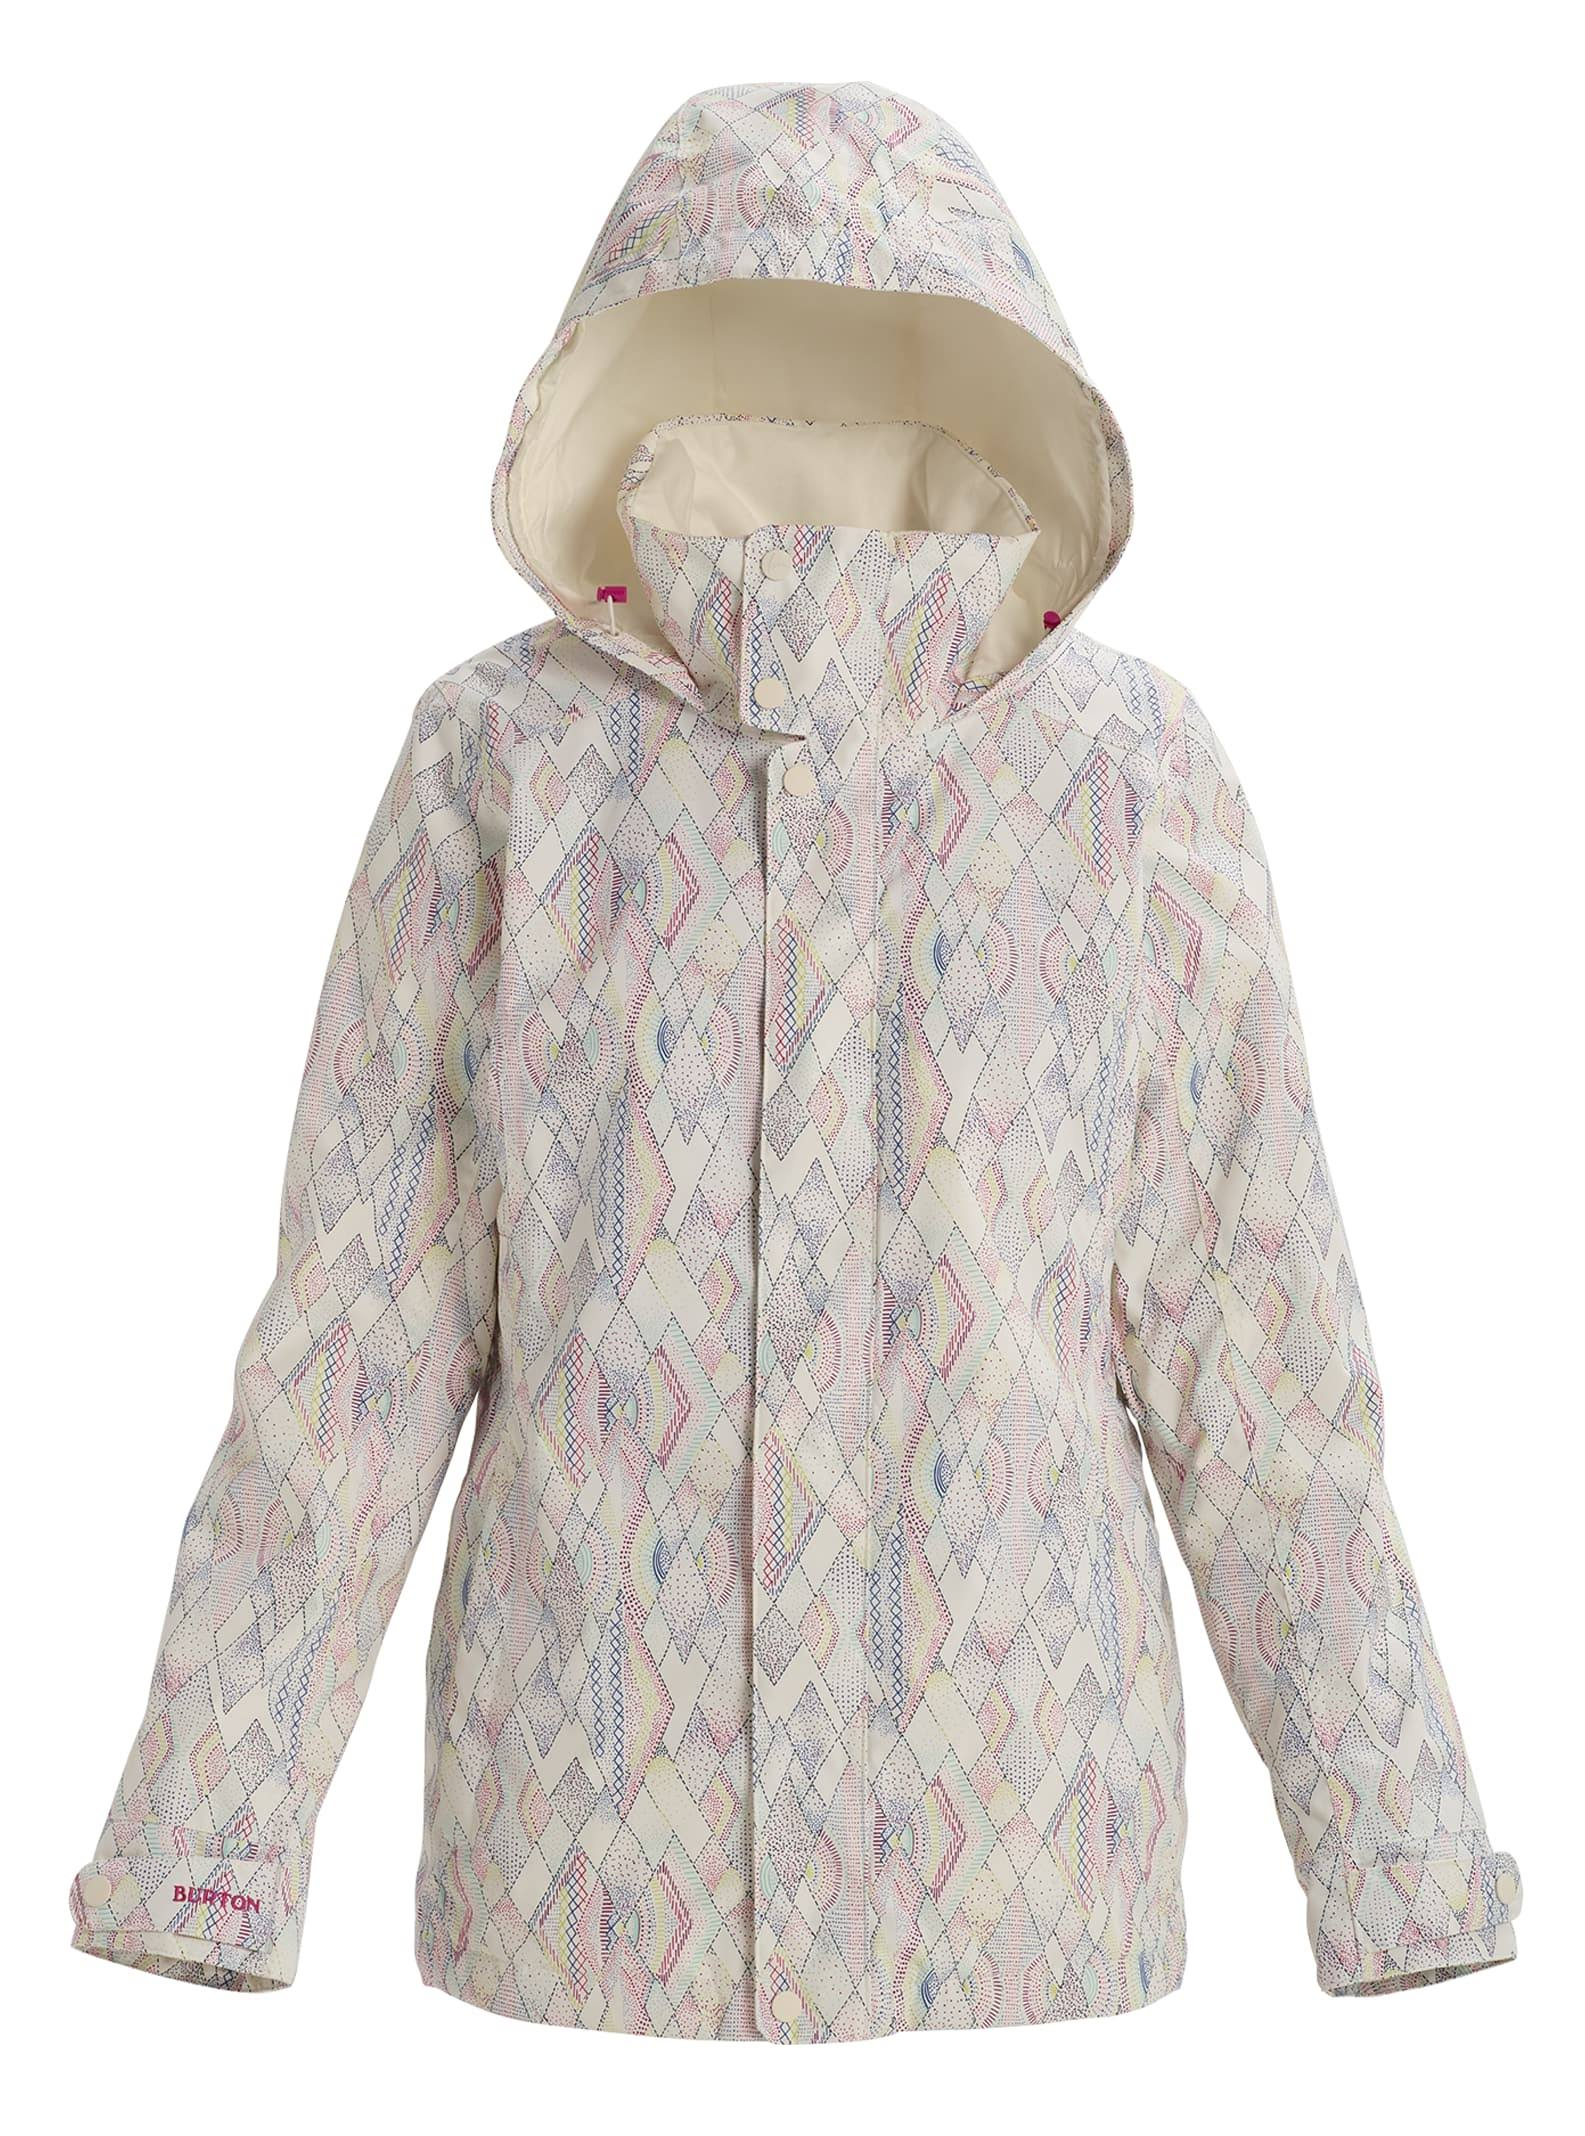 Burton Jet Set Jacket Women's- Diamond Dot